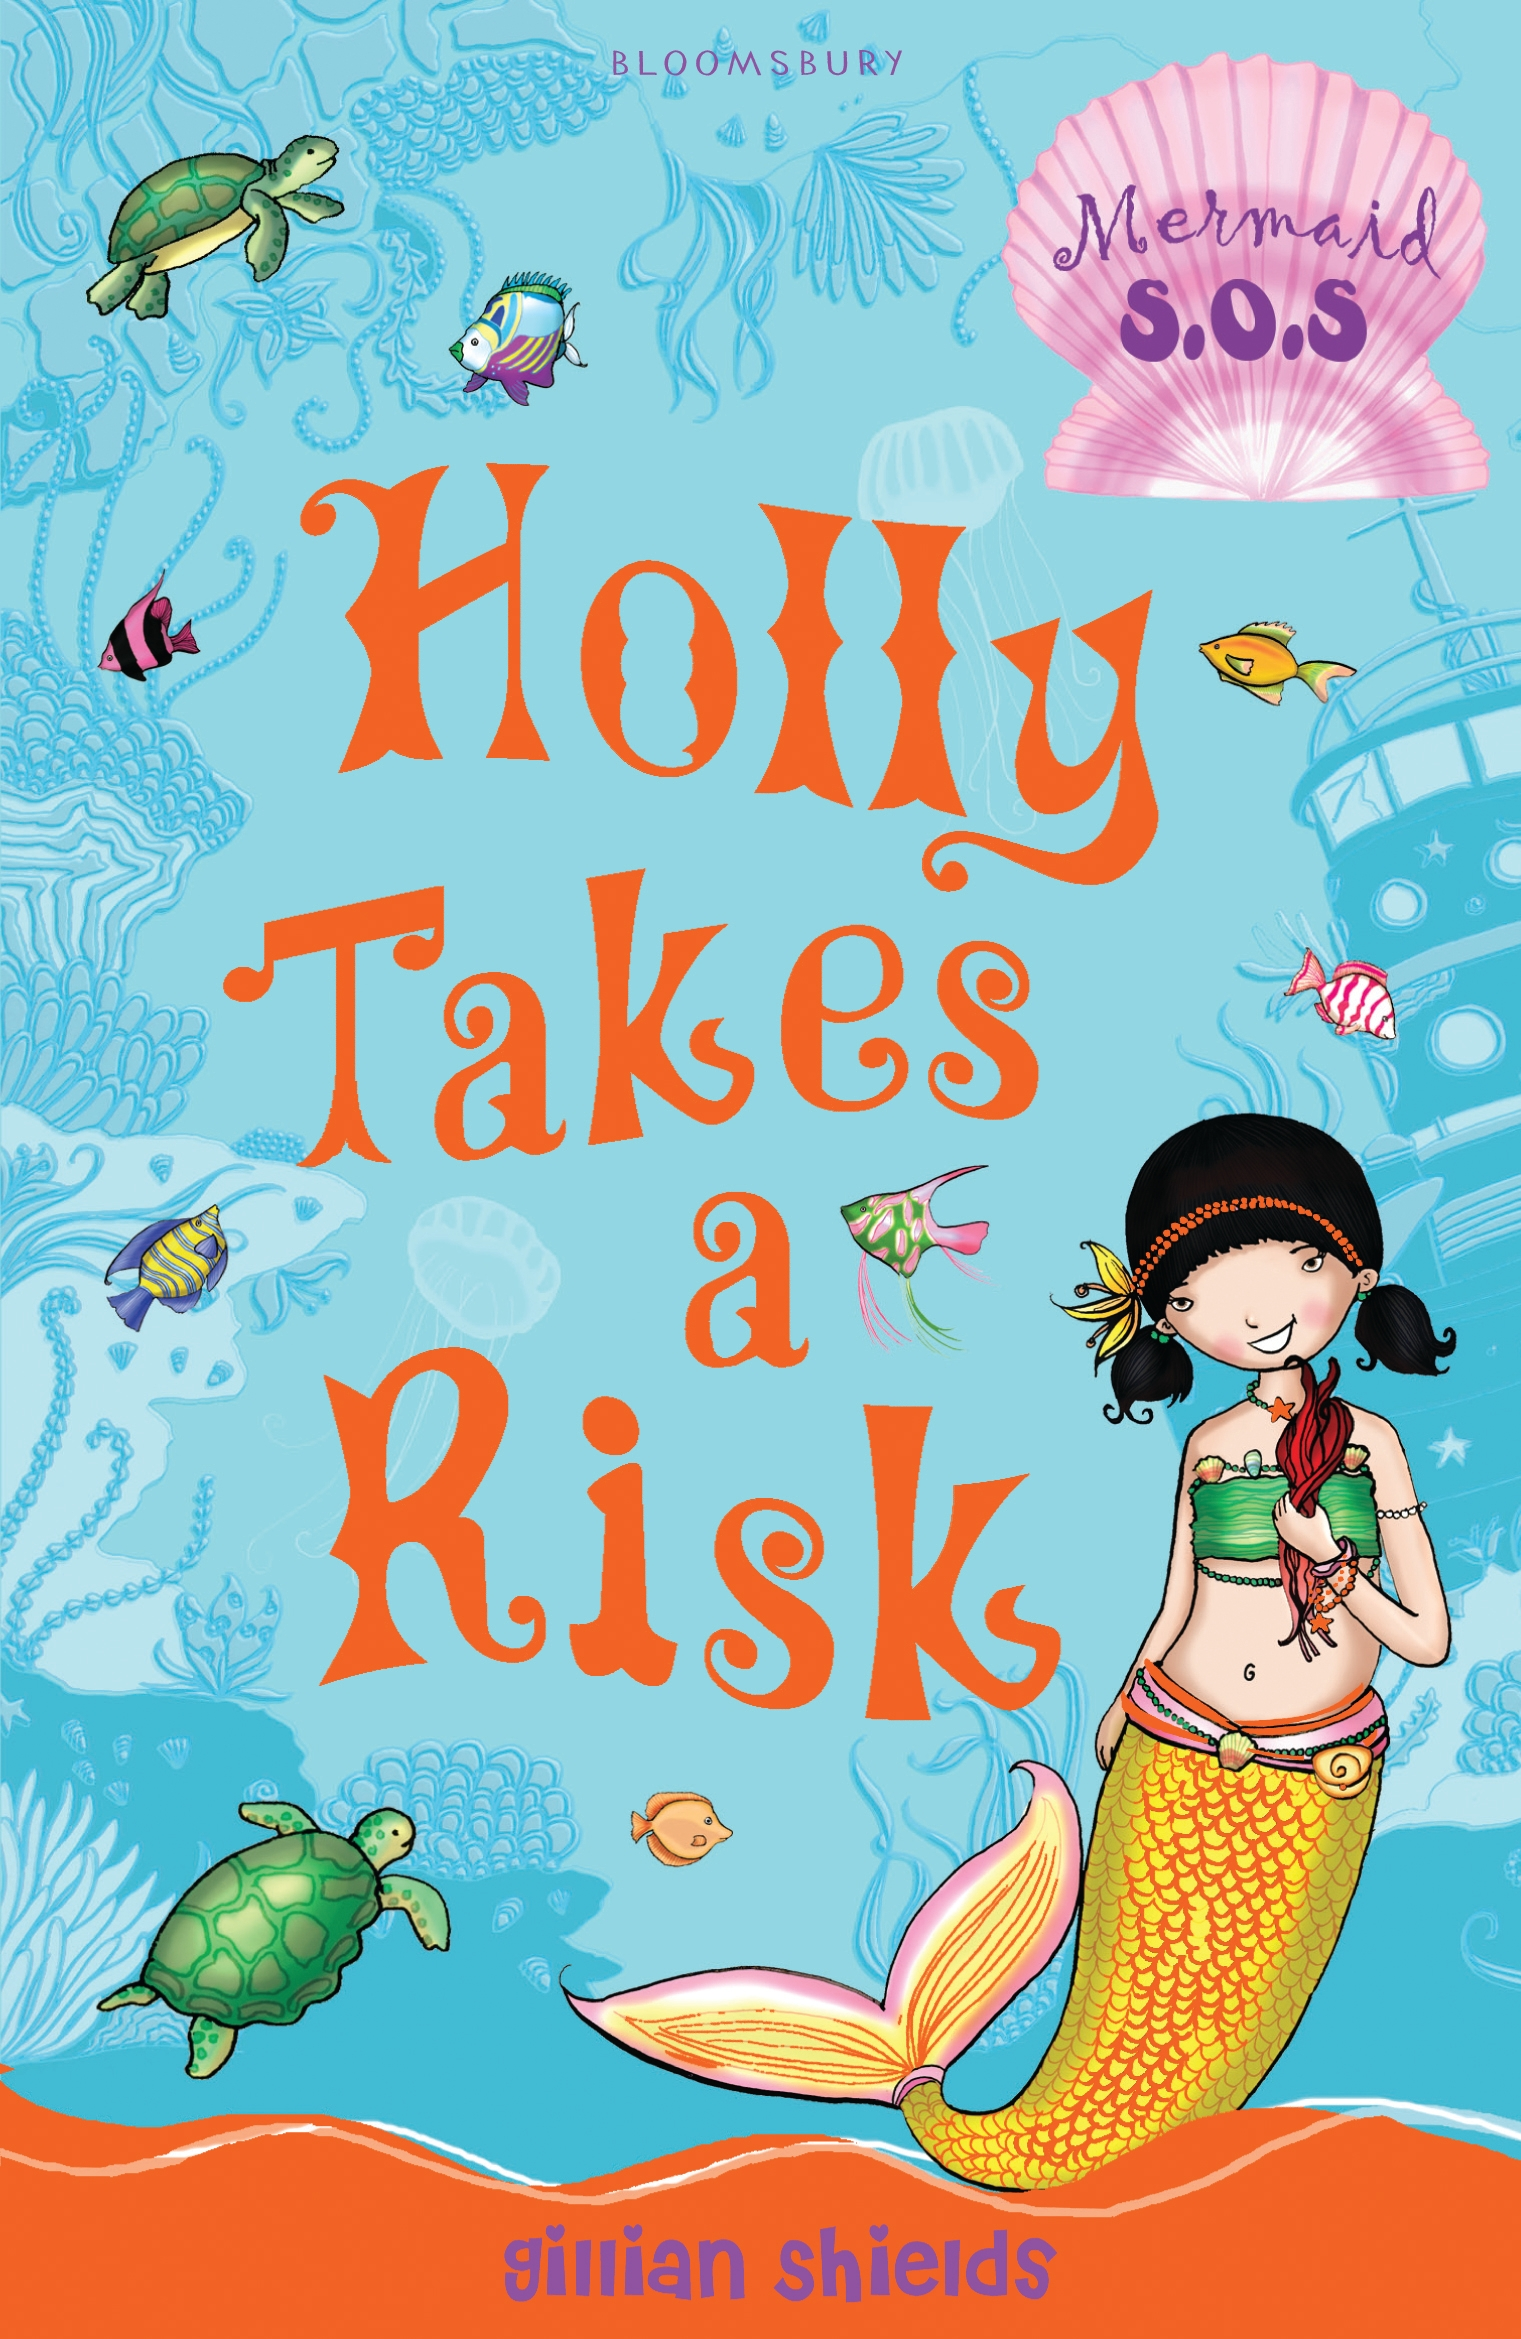 Holly Takes a Risk: Mermaid S.O.S.